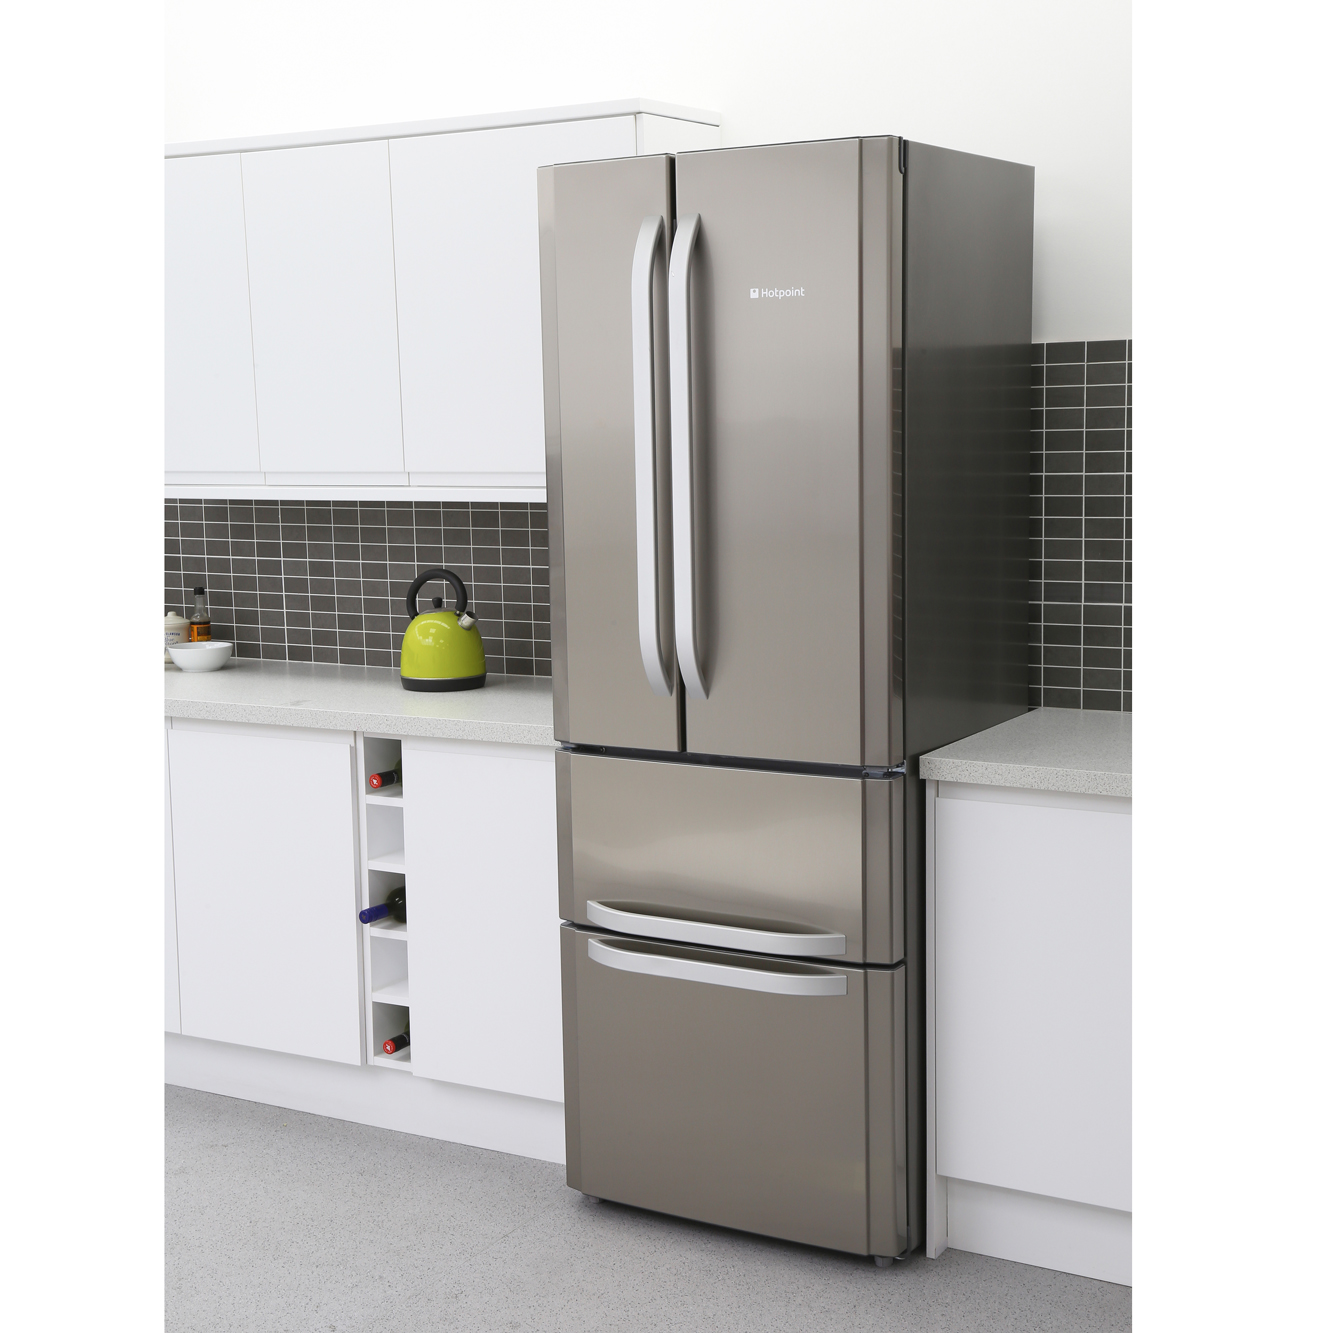 Buy Hotpoint FFU4DX American Fridge Freezer - Stainless